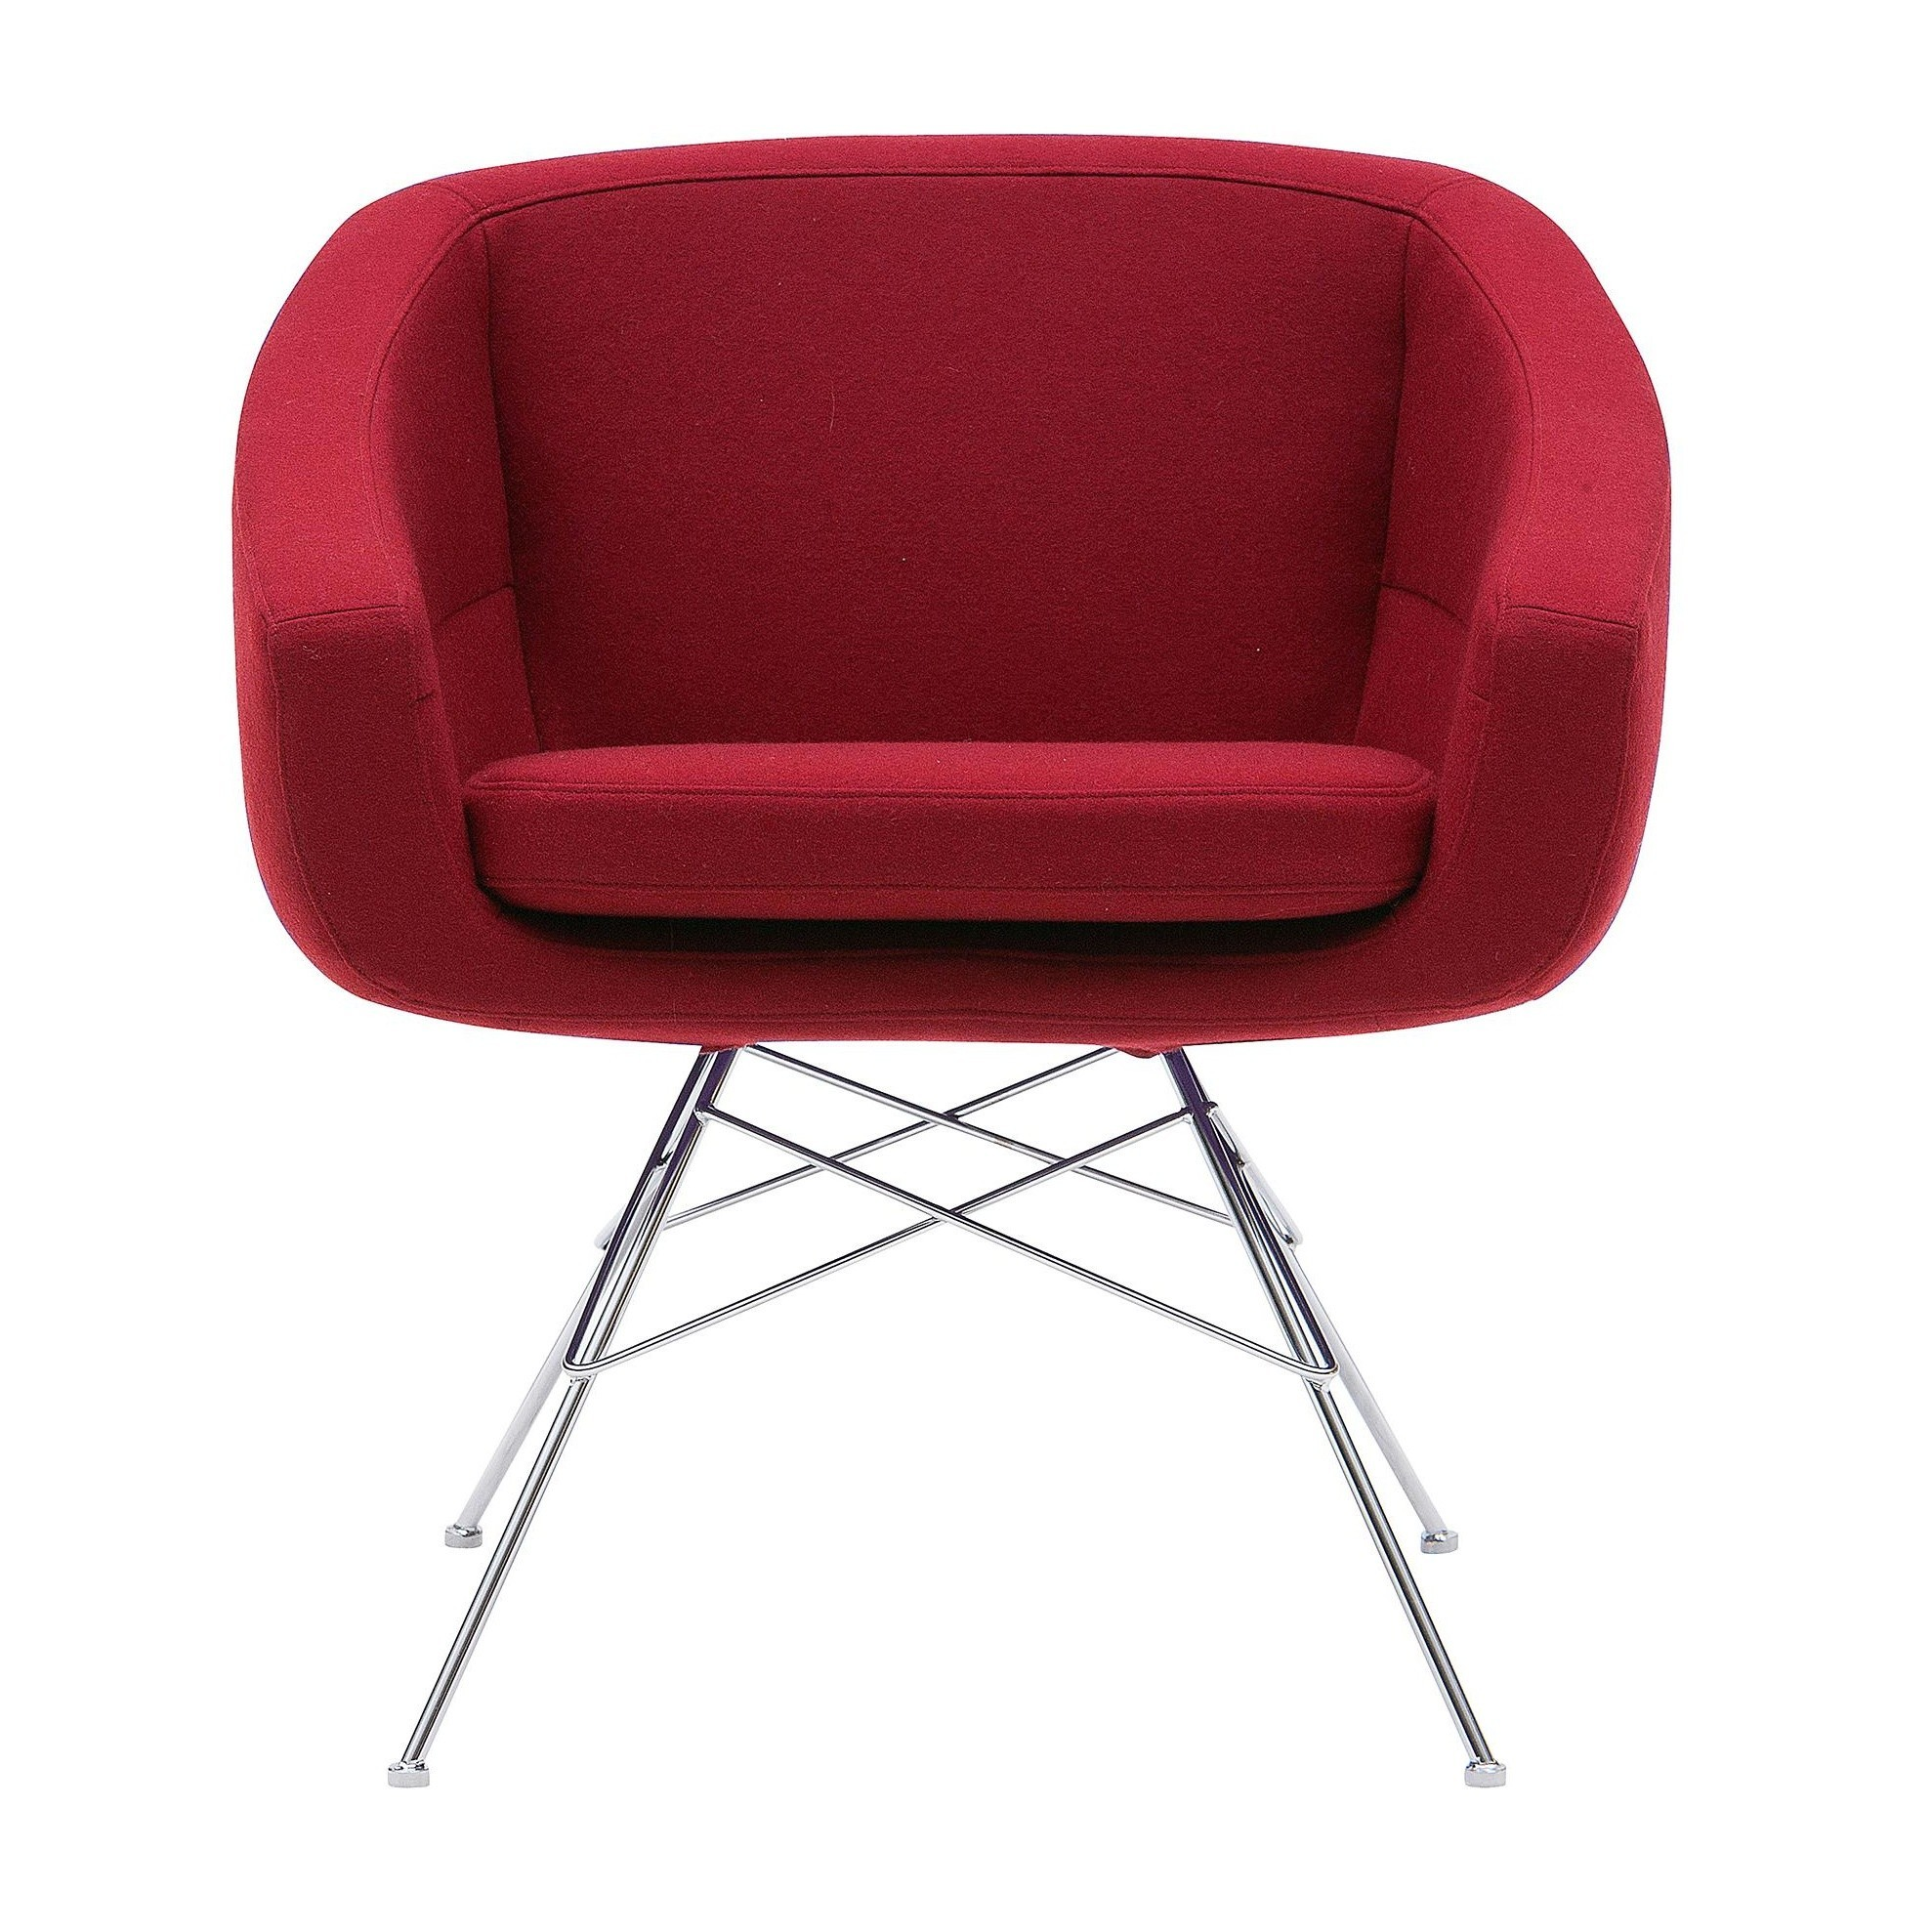 Lounge Sessel Ausziehbar Aiko Lounge Sessel